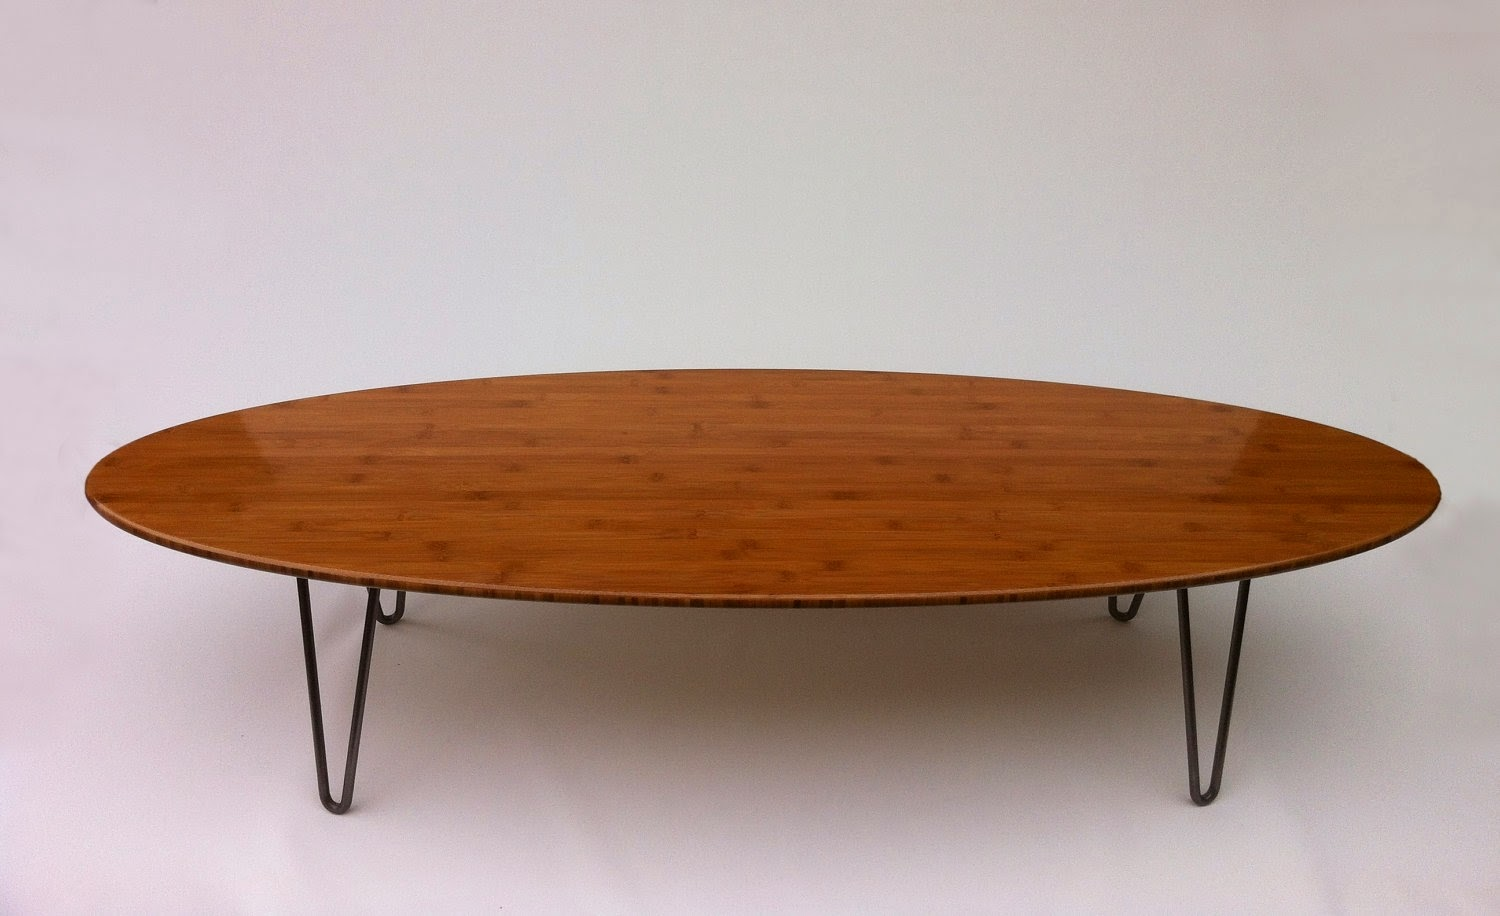 Oval Coffee Table Classic Design Wood With Metal Oval Coffee Table